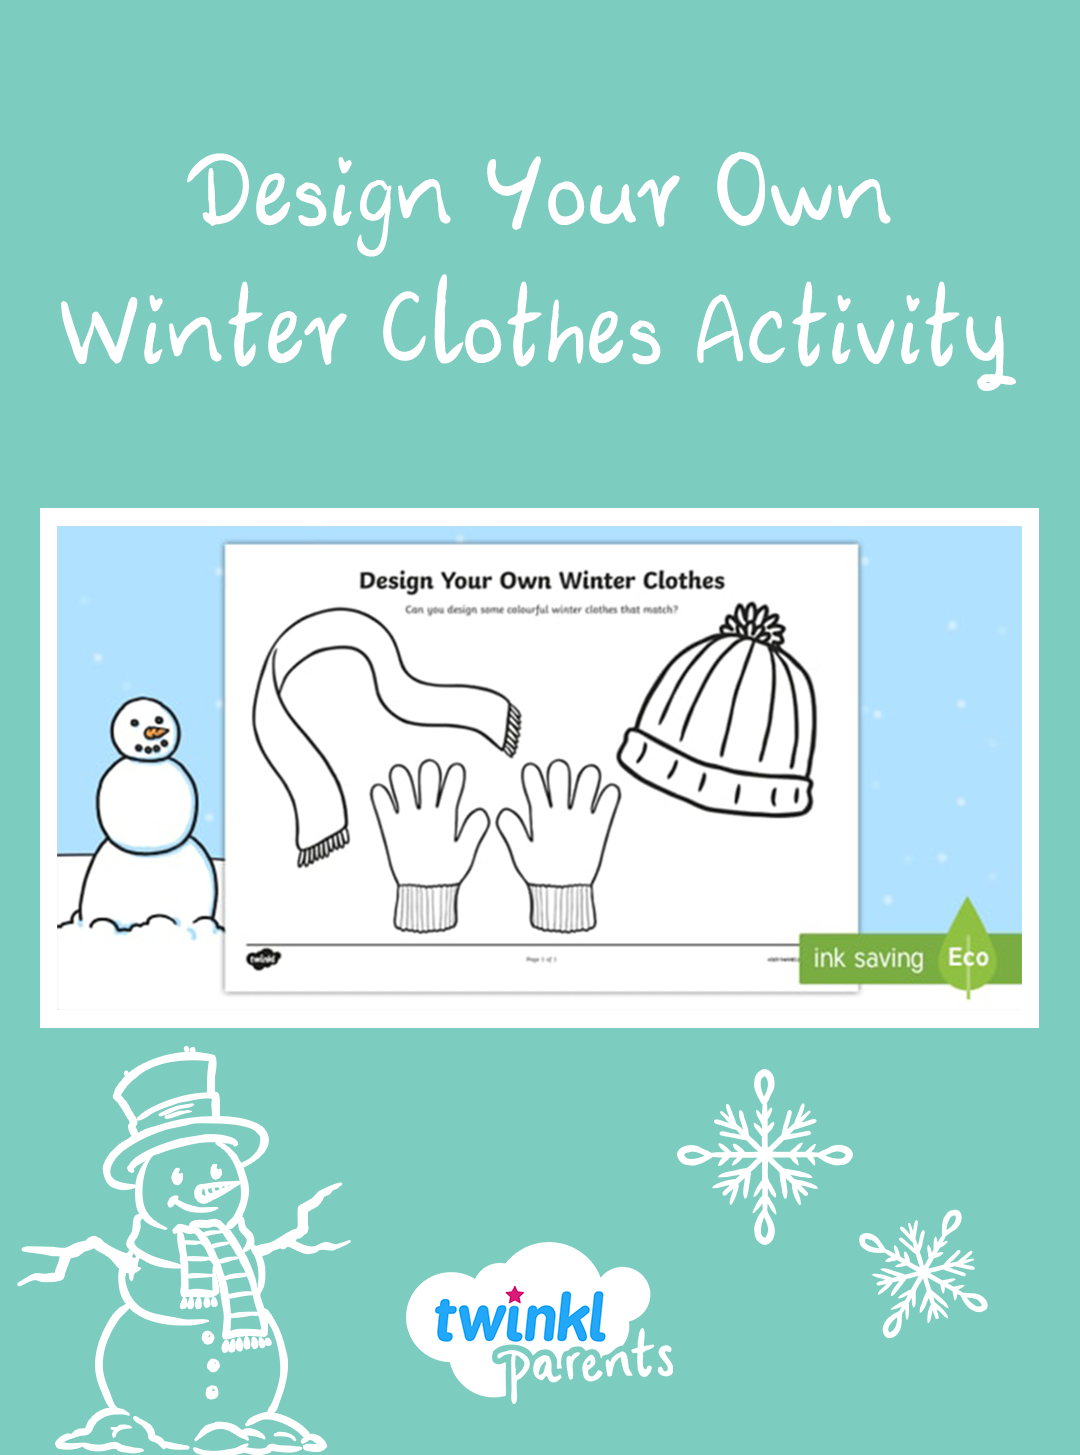 Design Your Own Winter Clothes Activity